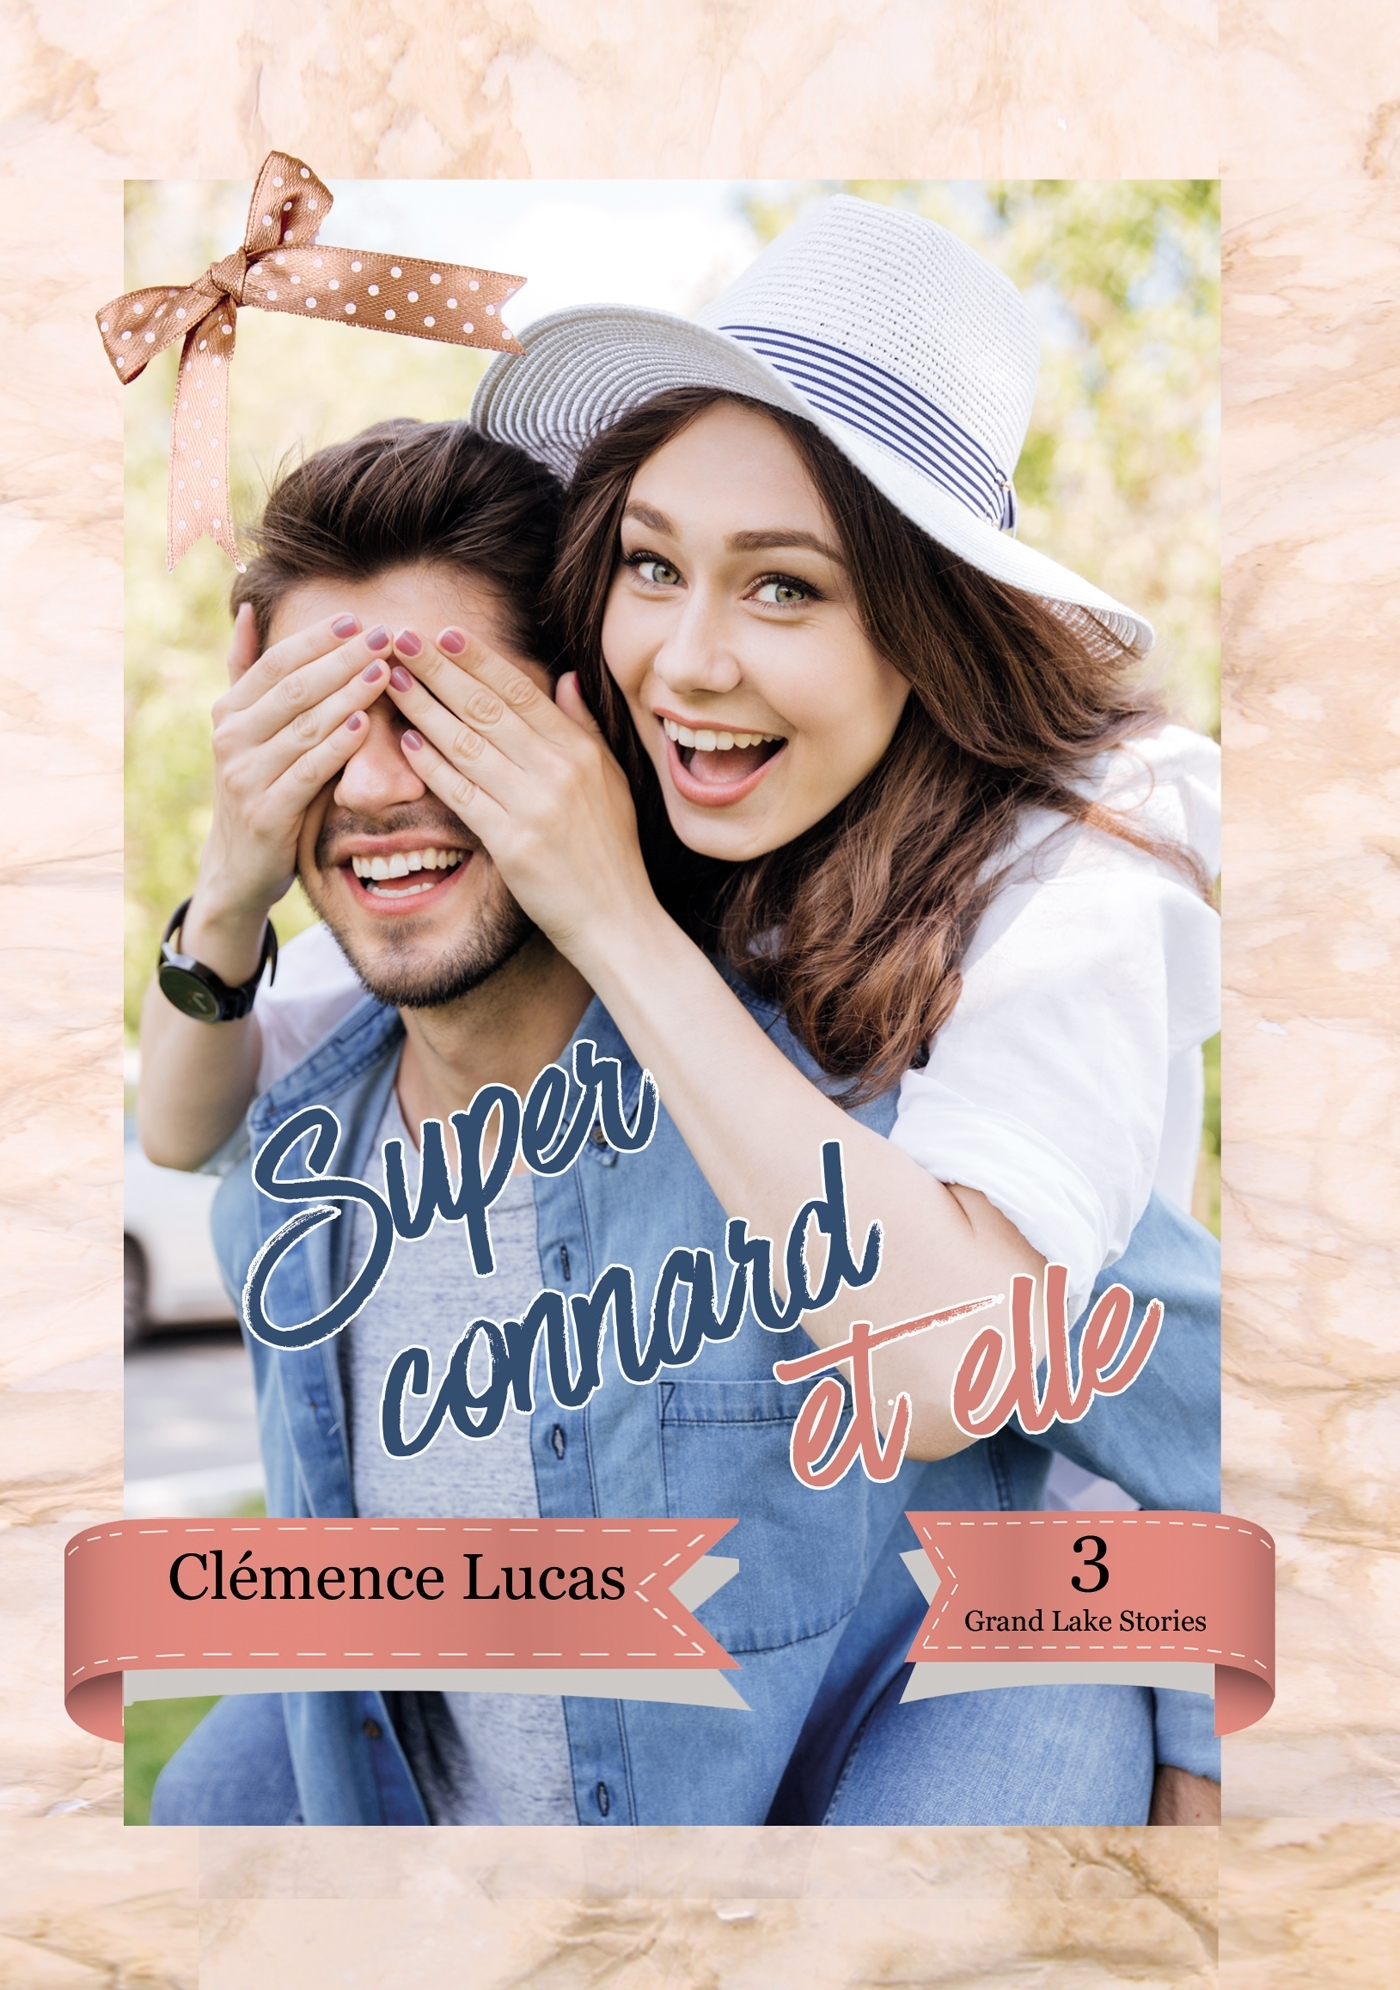 SUPER CONNARD ET ELLE - GRAND LAKE STORIES TOME 3